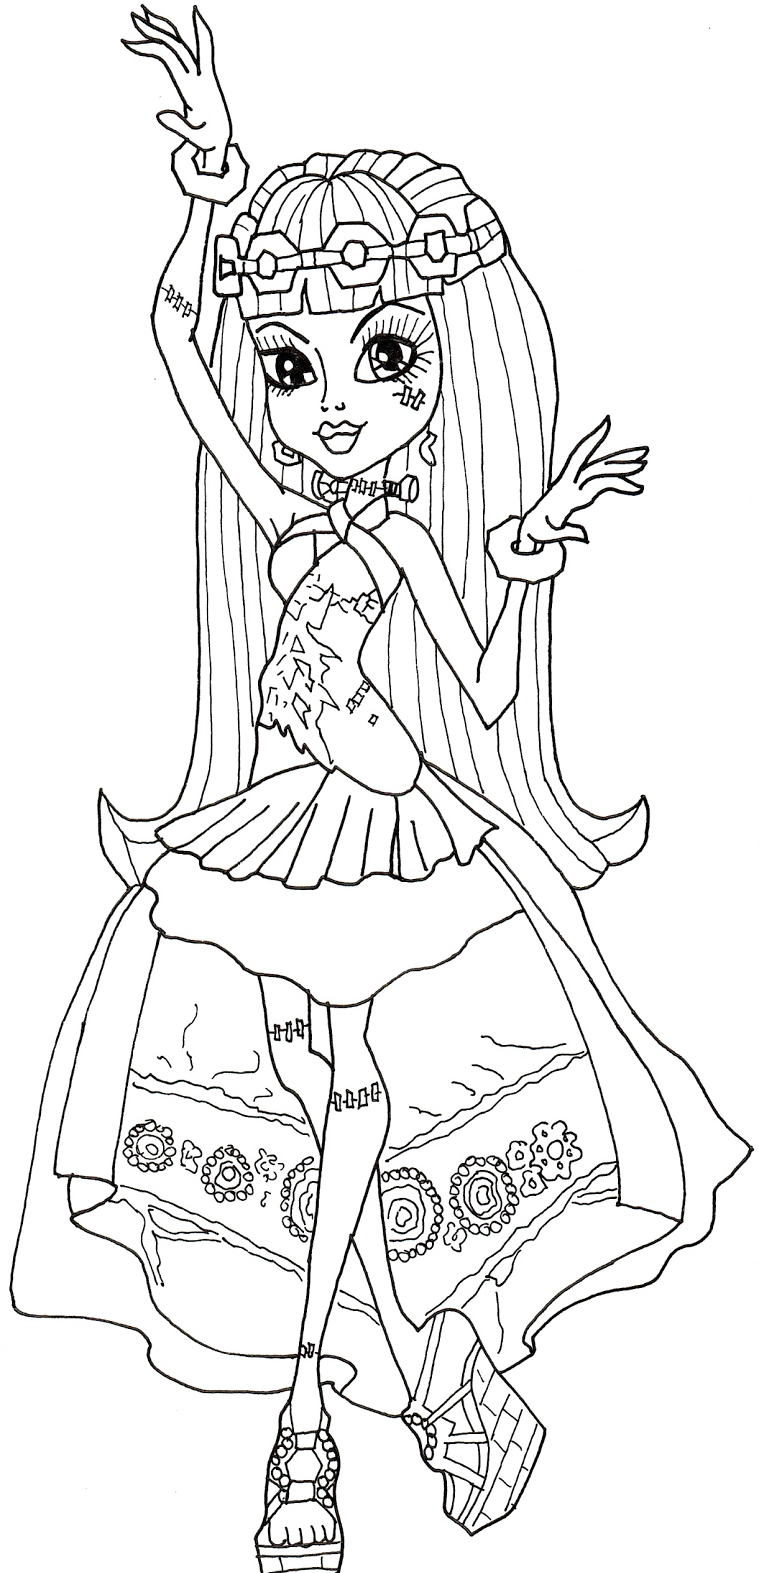 Monster High Meerjungfrau Ausmalbilder : Monster High Frankie Stein Dancing Coloring Pages Coloring Parties